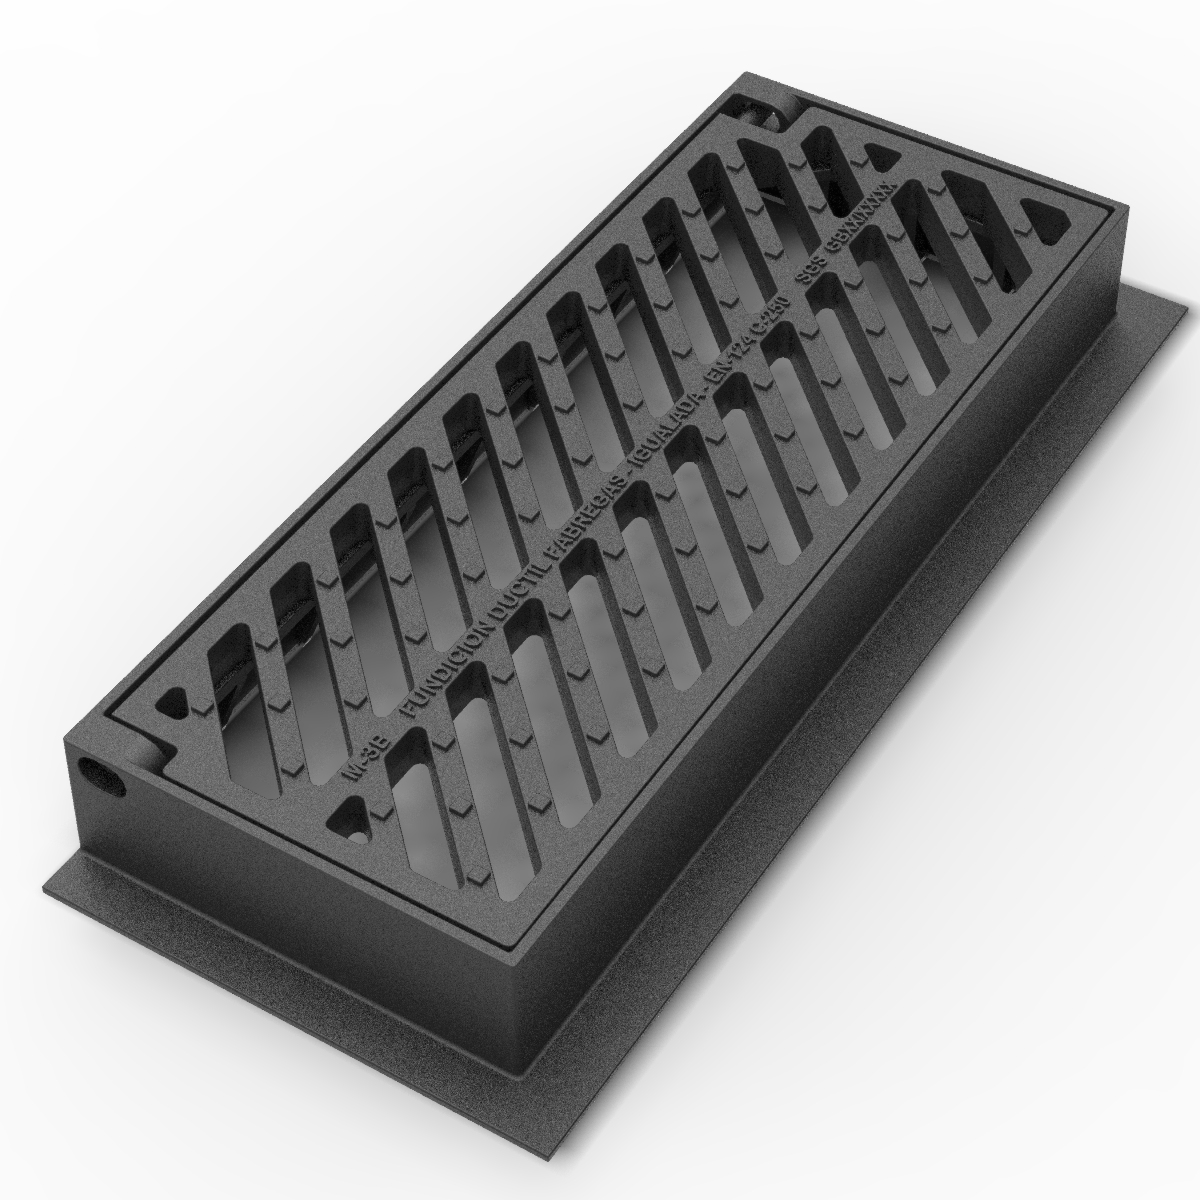 Barcelona Folding Scupper grate and Frame in ductile casting M-3B